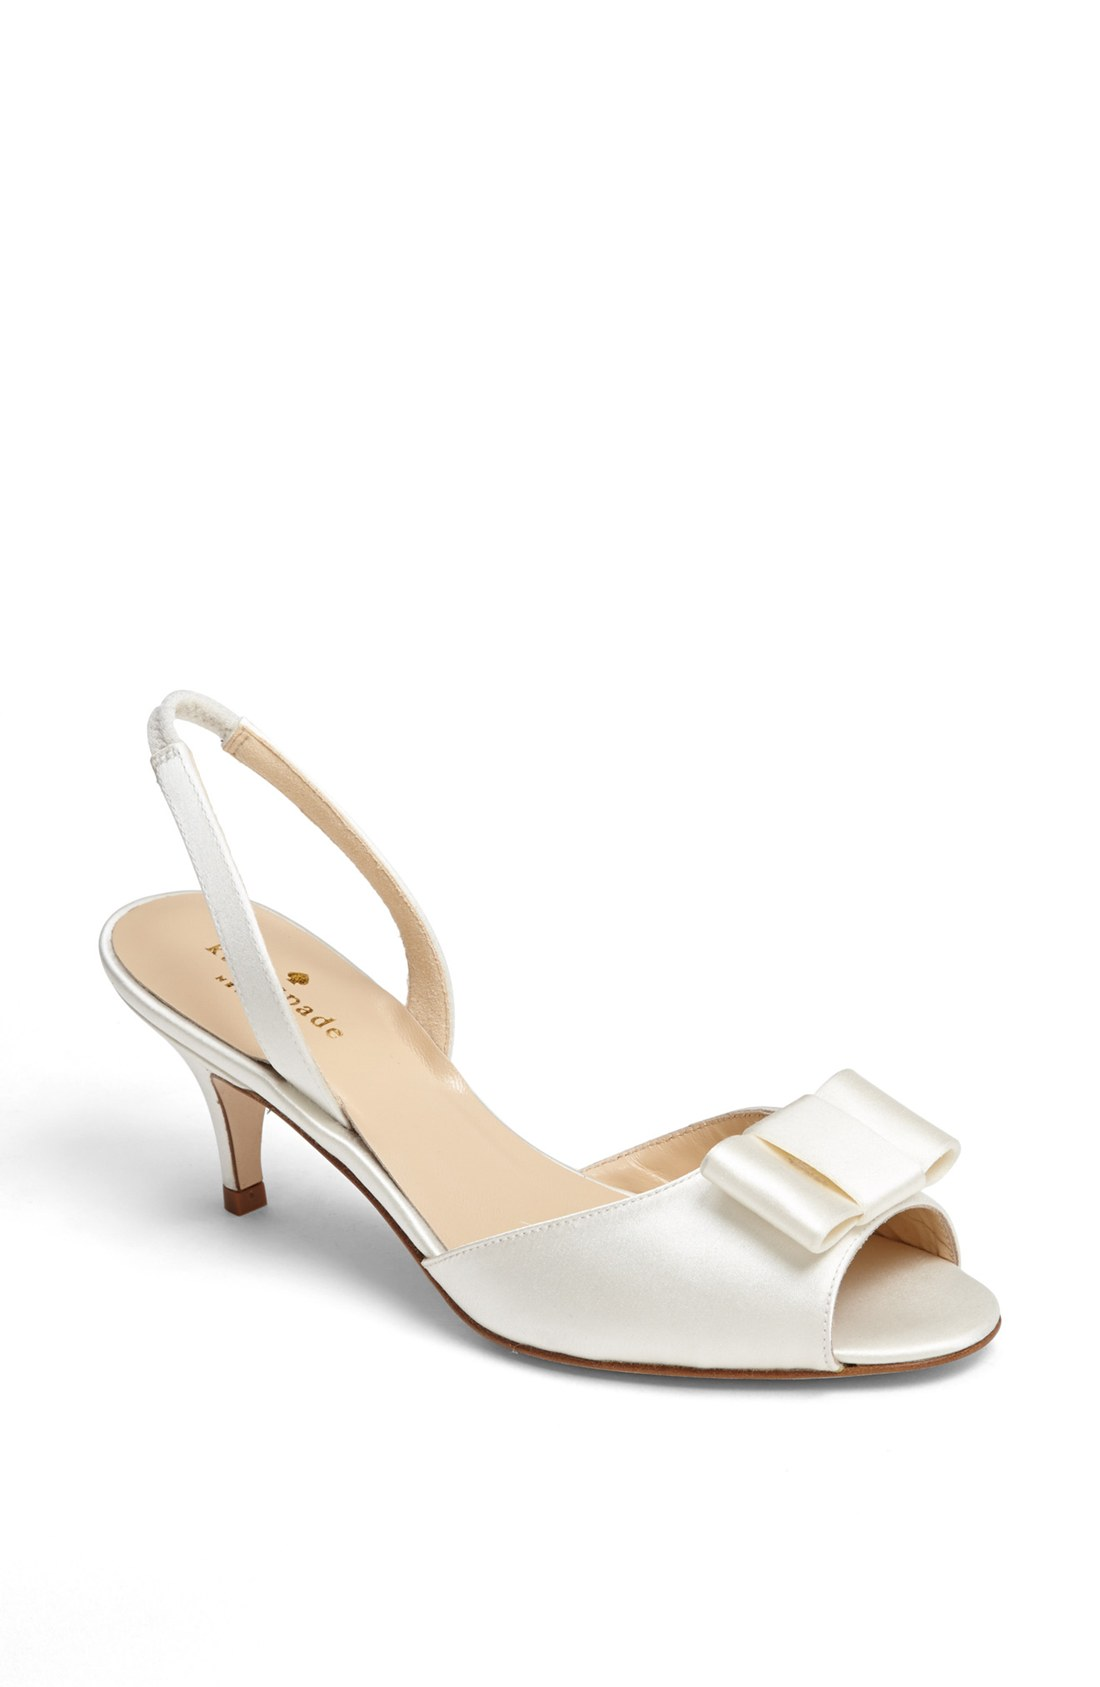 Ivory Satin Slingback Wedding Shoes